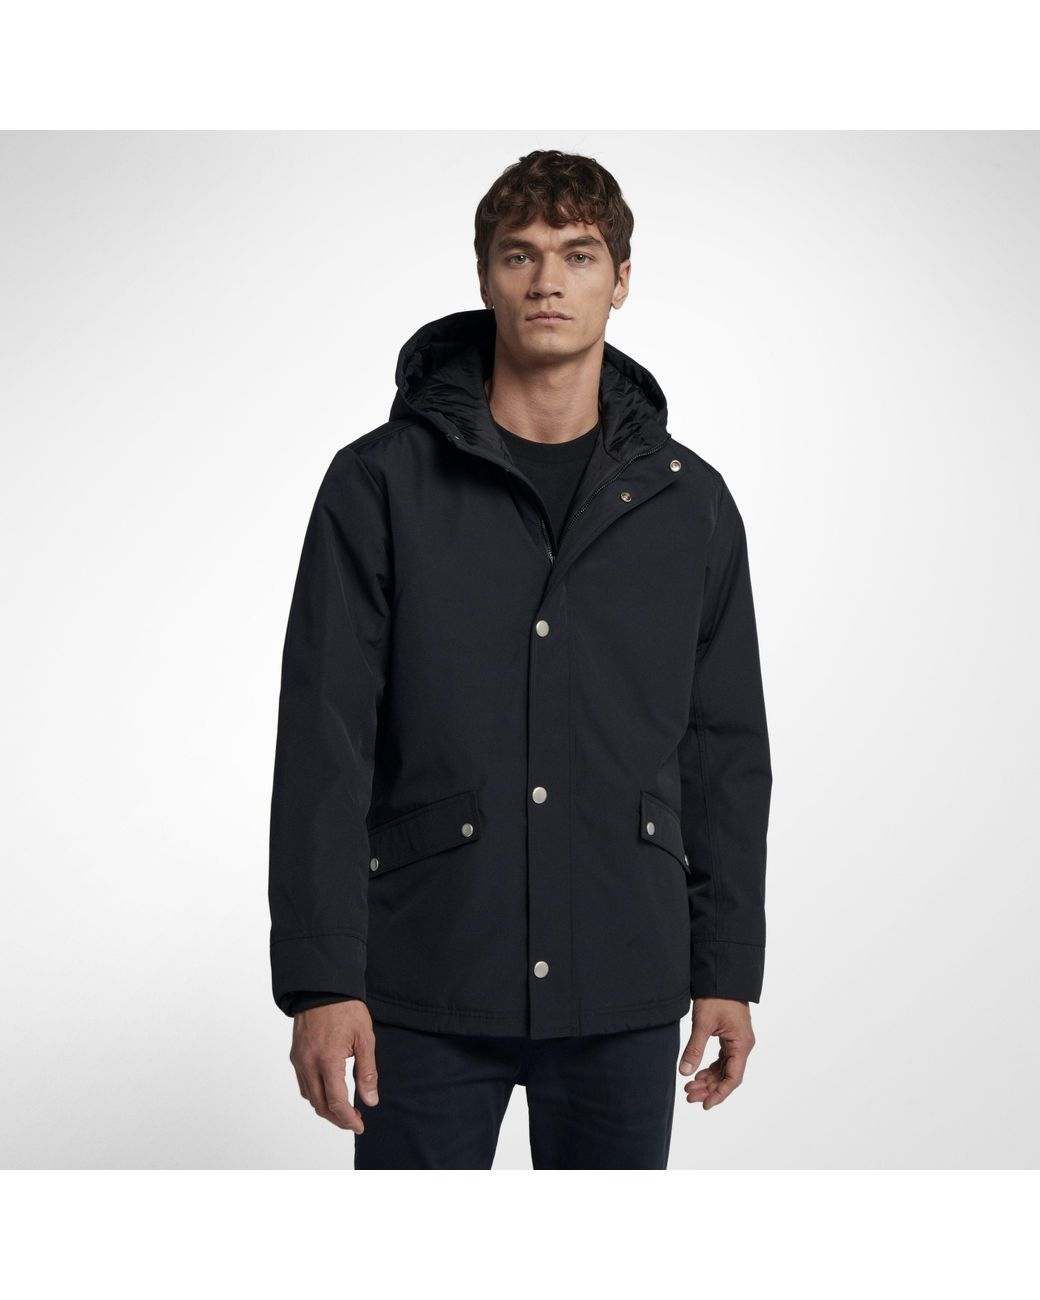 21538f081296 Nike Hurley Timber Hooded Jacket in Black for Men - Lyst